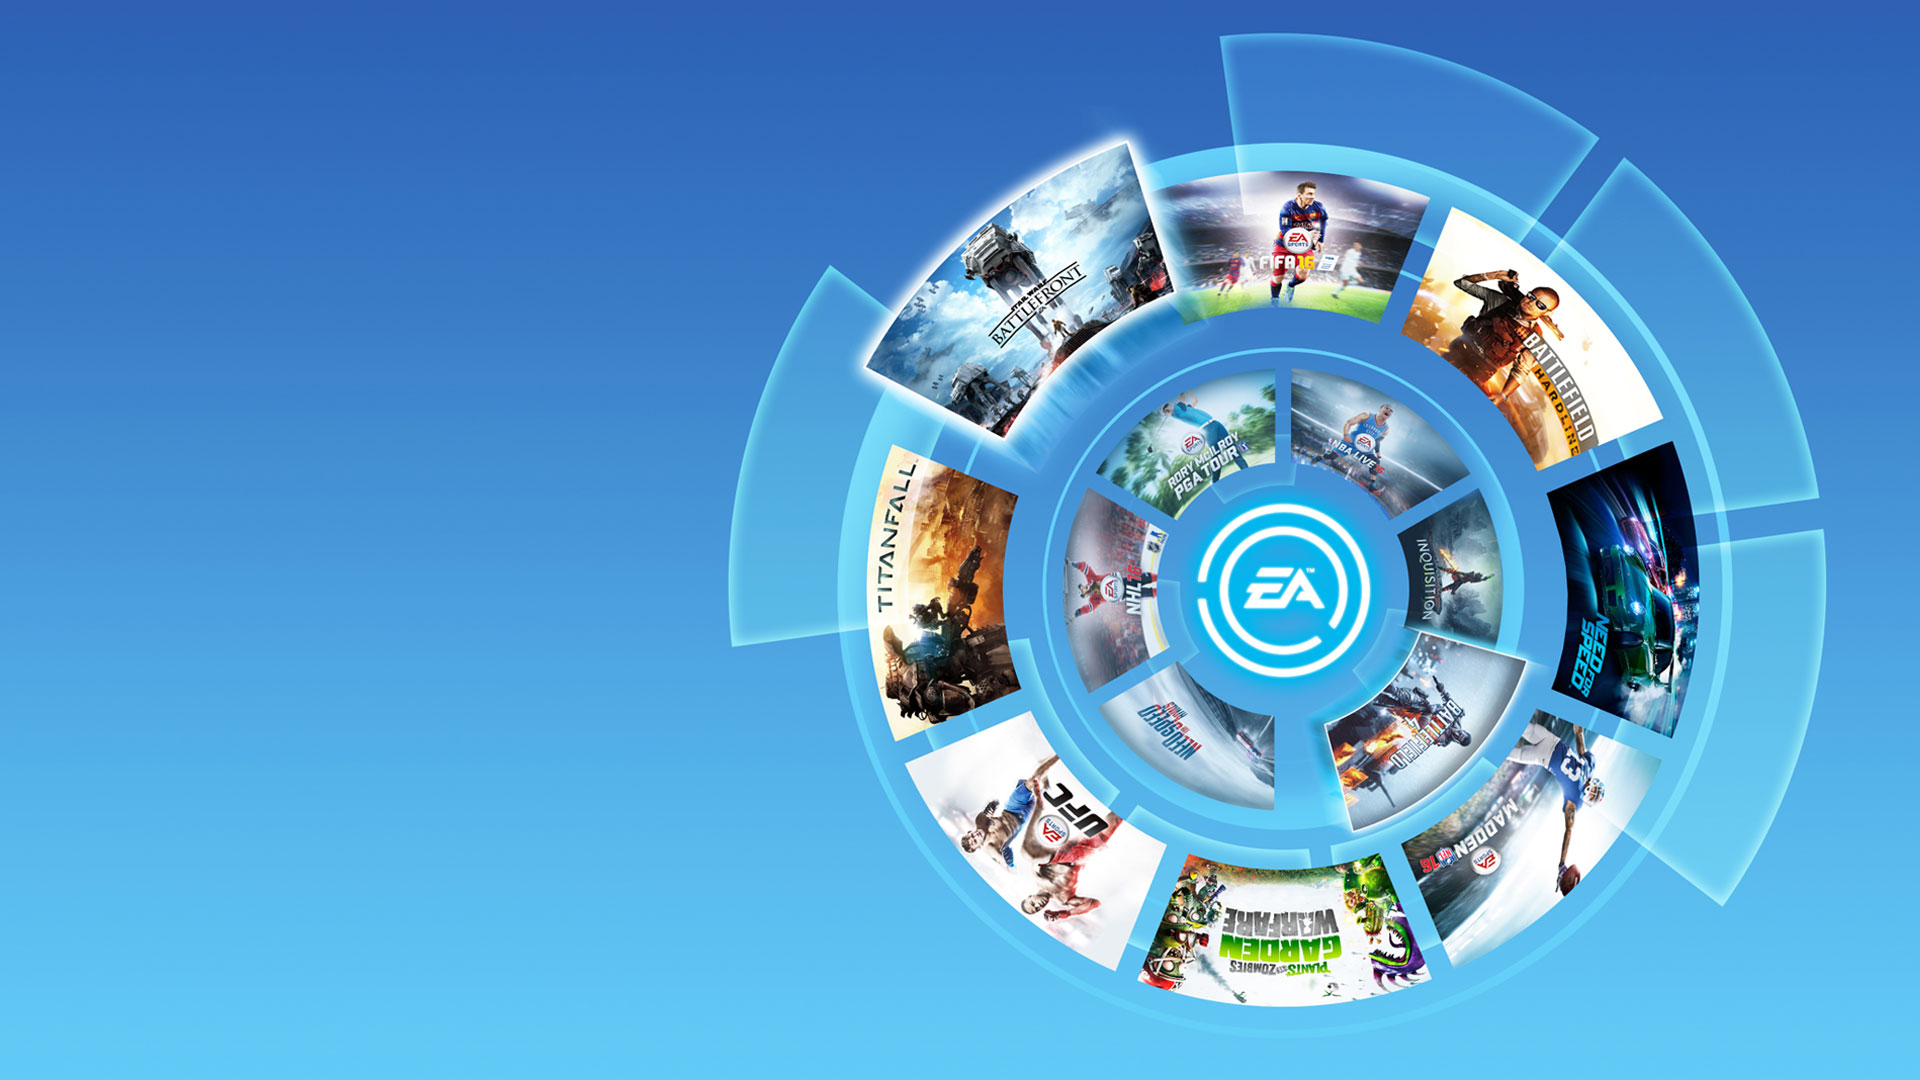 ea access giving away gift boxes which includes 2tb hard drive. Black Bedroom Furniture Sets. Home Design Ideas